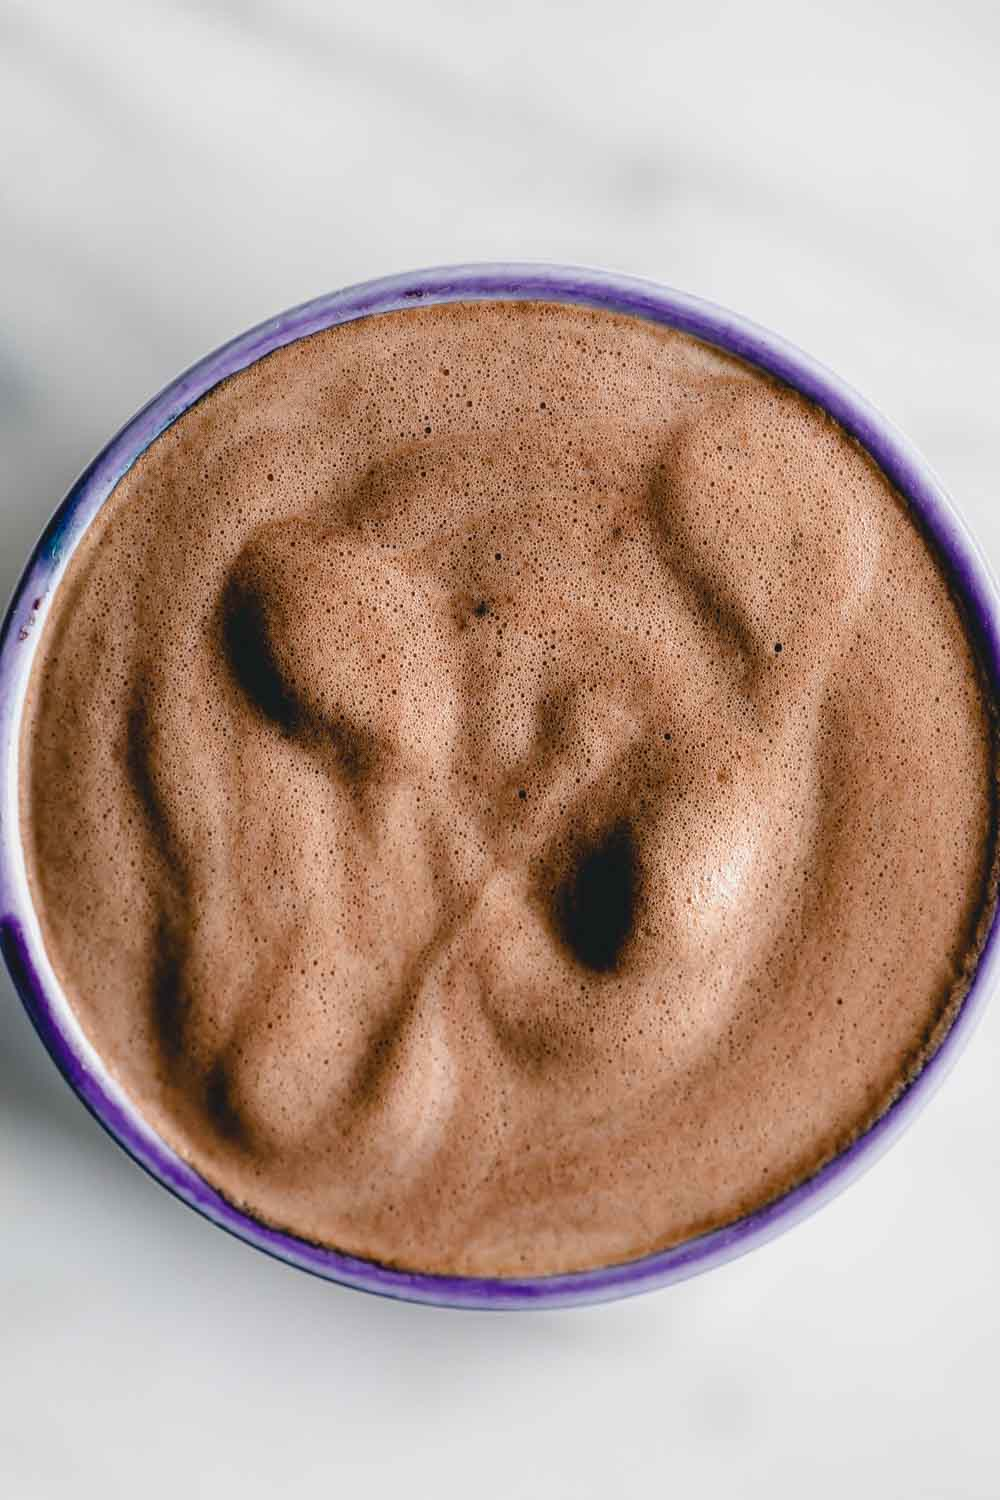 Frothed vegan chocolate milk in a mug with a blue edge